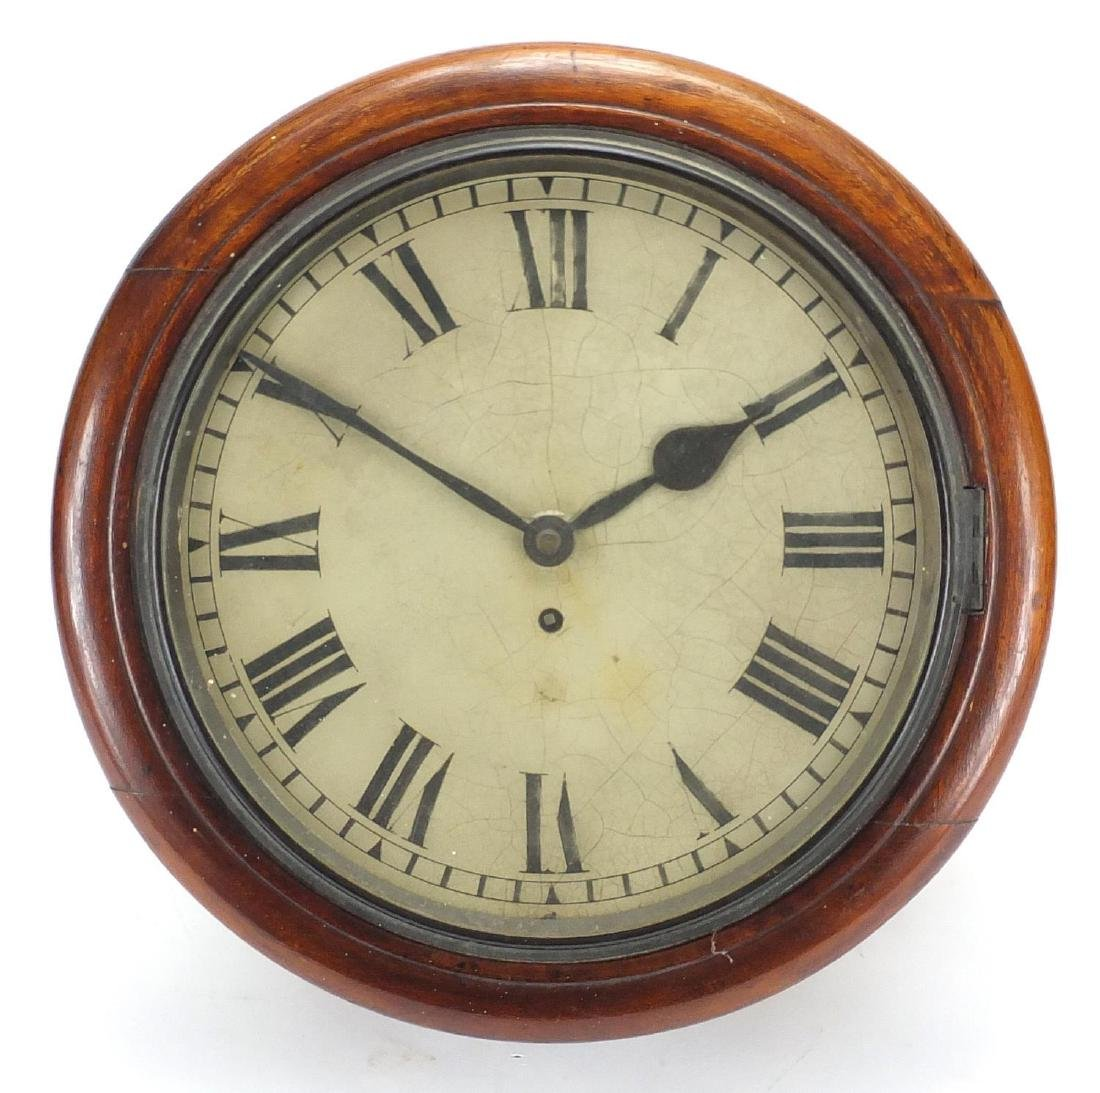 Victorian mahogany fusee wall clock with Roman numerals, 39cm in diameter